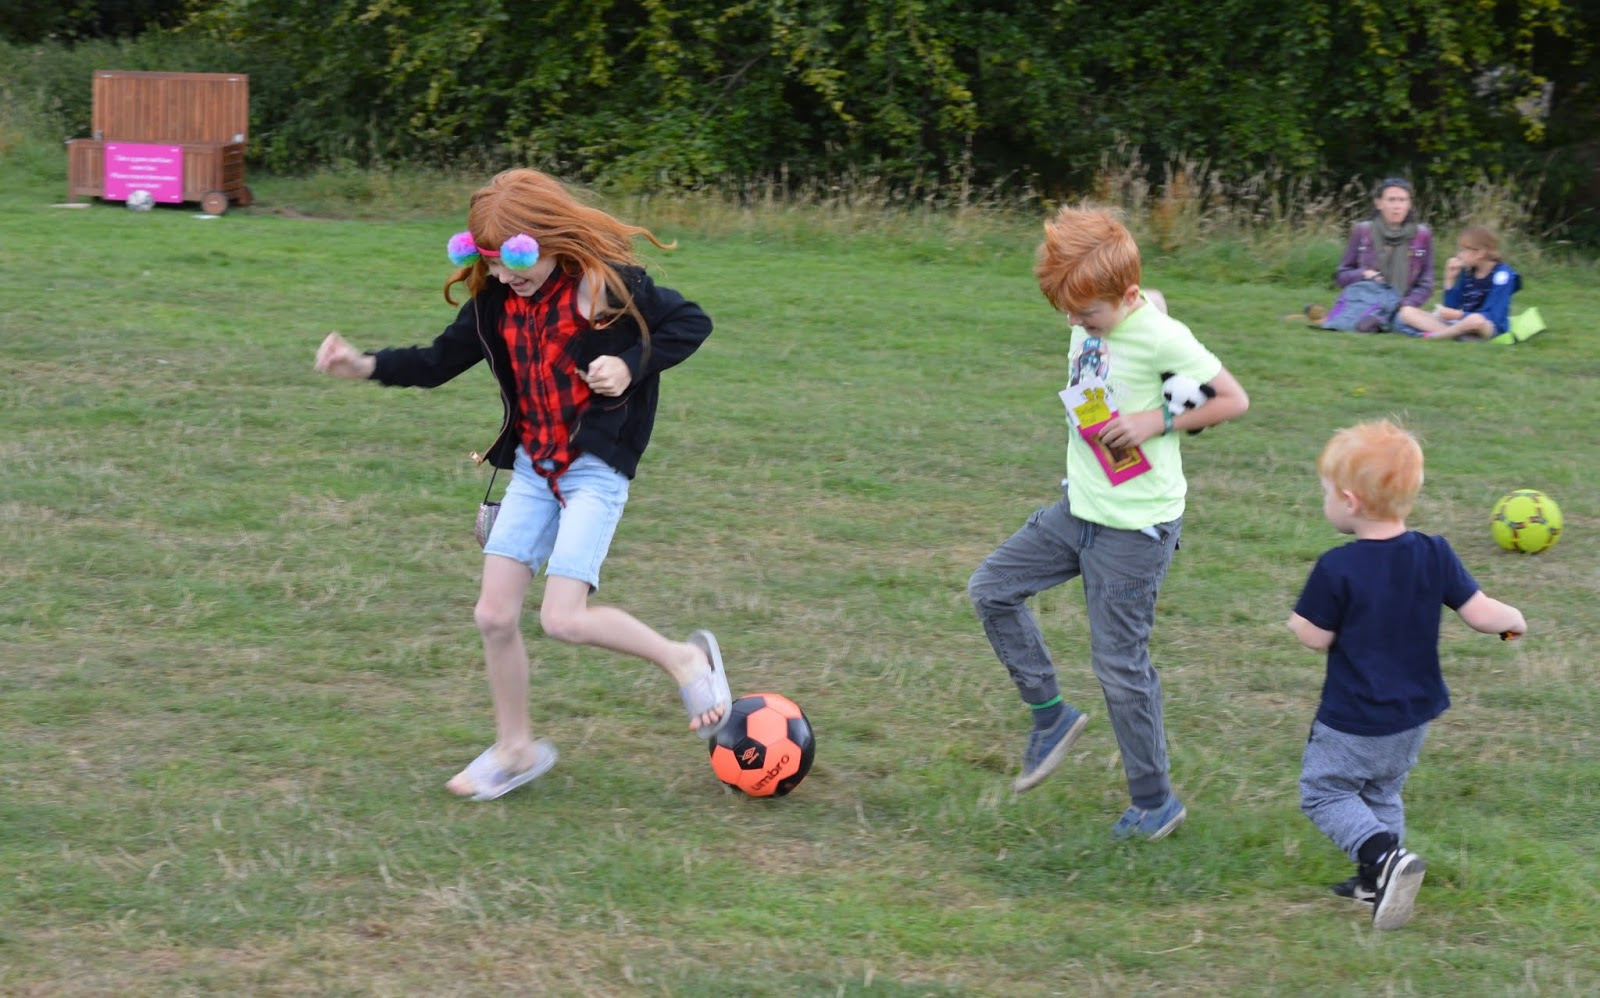 10 Reasons to Visit Seaton Delaval Hall  - ball games in the paddock